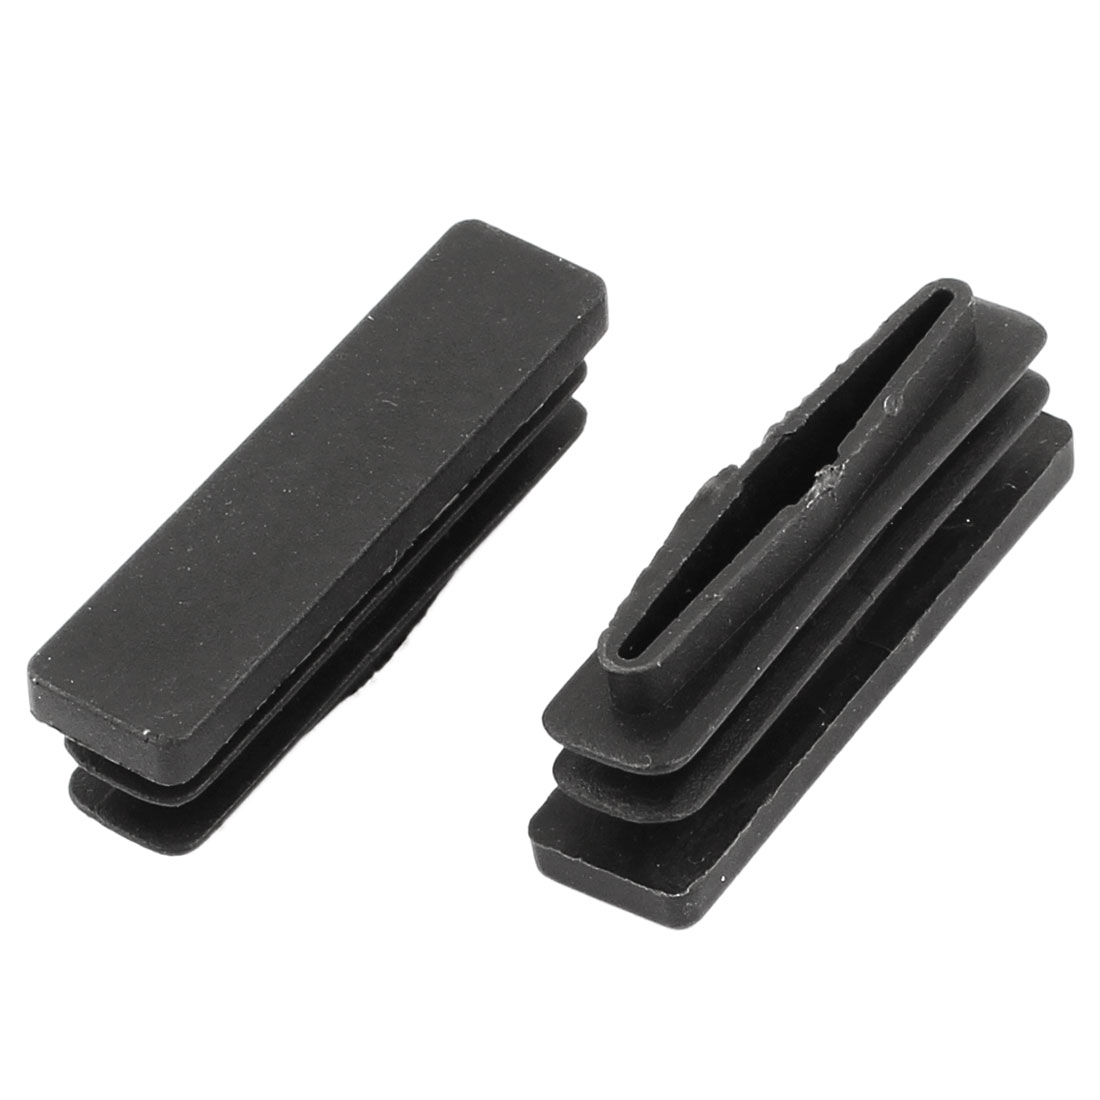 2 Pieces Black Plastic Rectangle Blanking End Caps Tubing Tube Inserts 10mm x 40mm